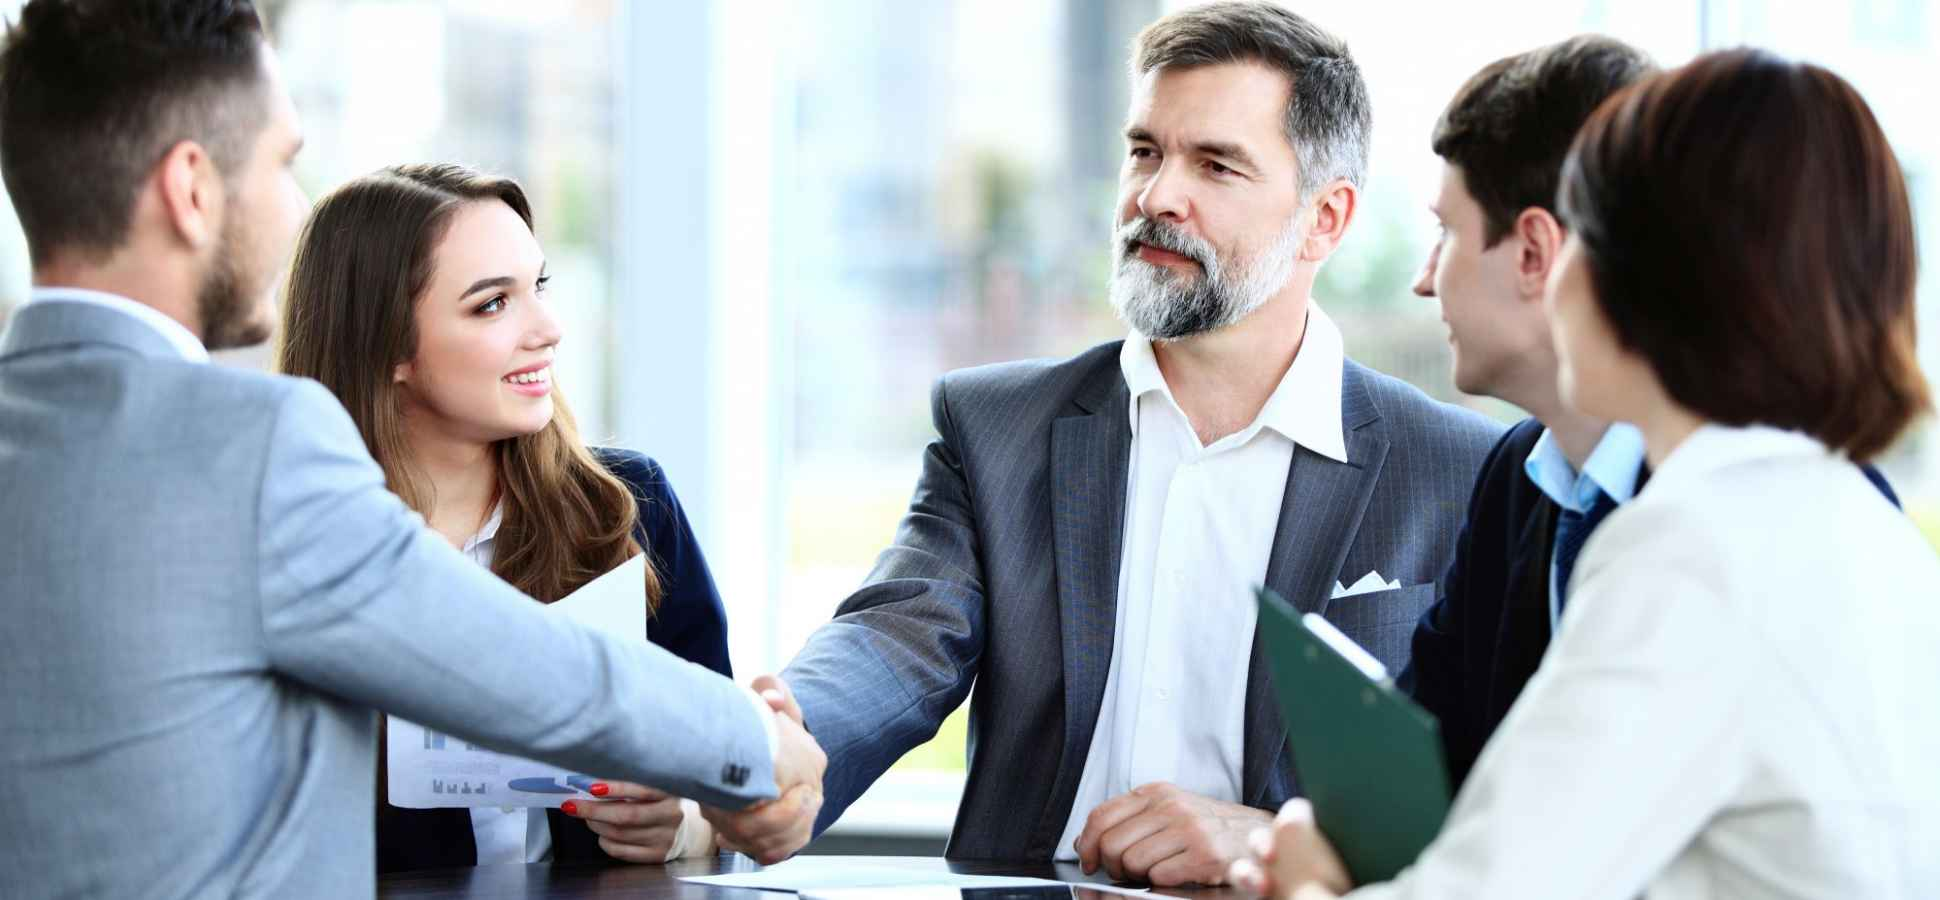 If Your Startup Fails, Make Sure Your Long-Term Investor Relationships Succeed